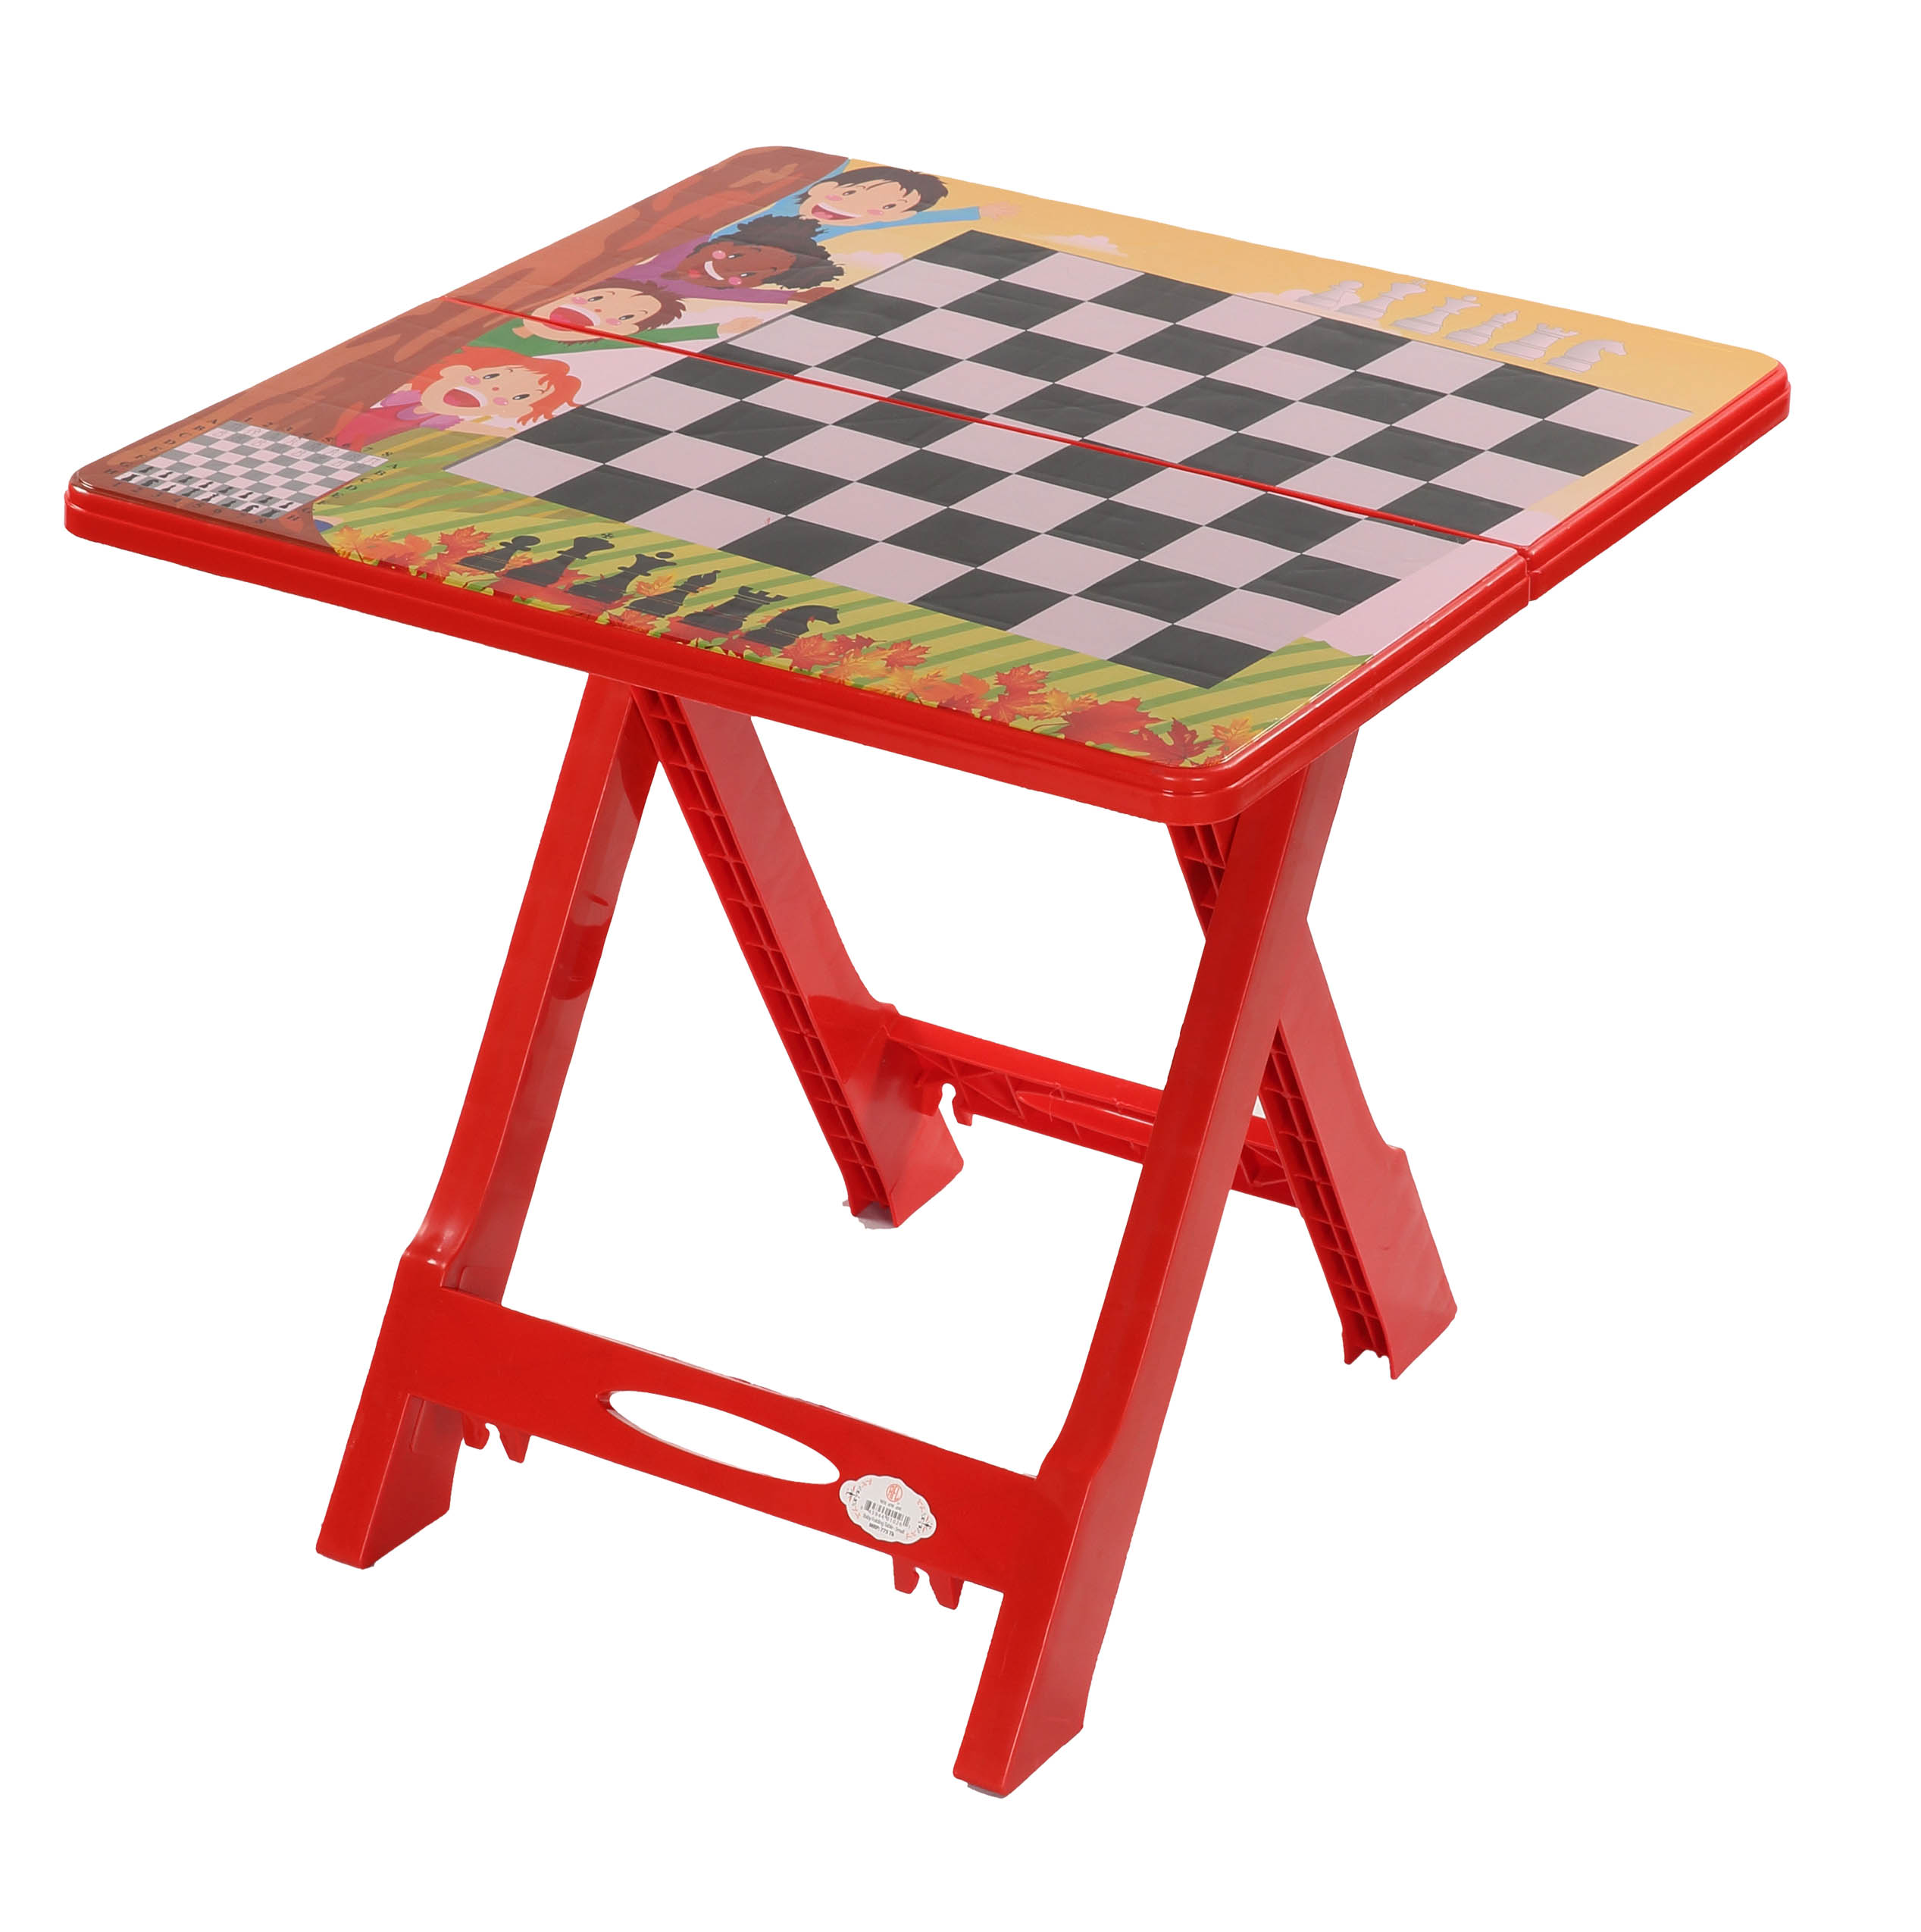 Baby Folding Table Printed Chess-Red